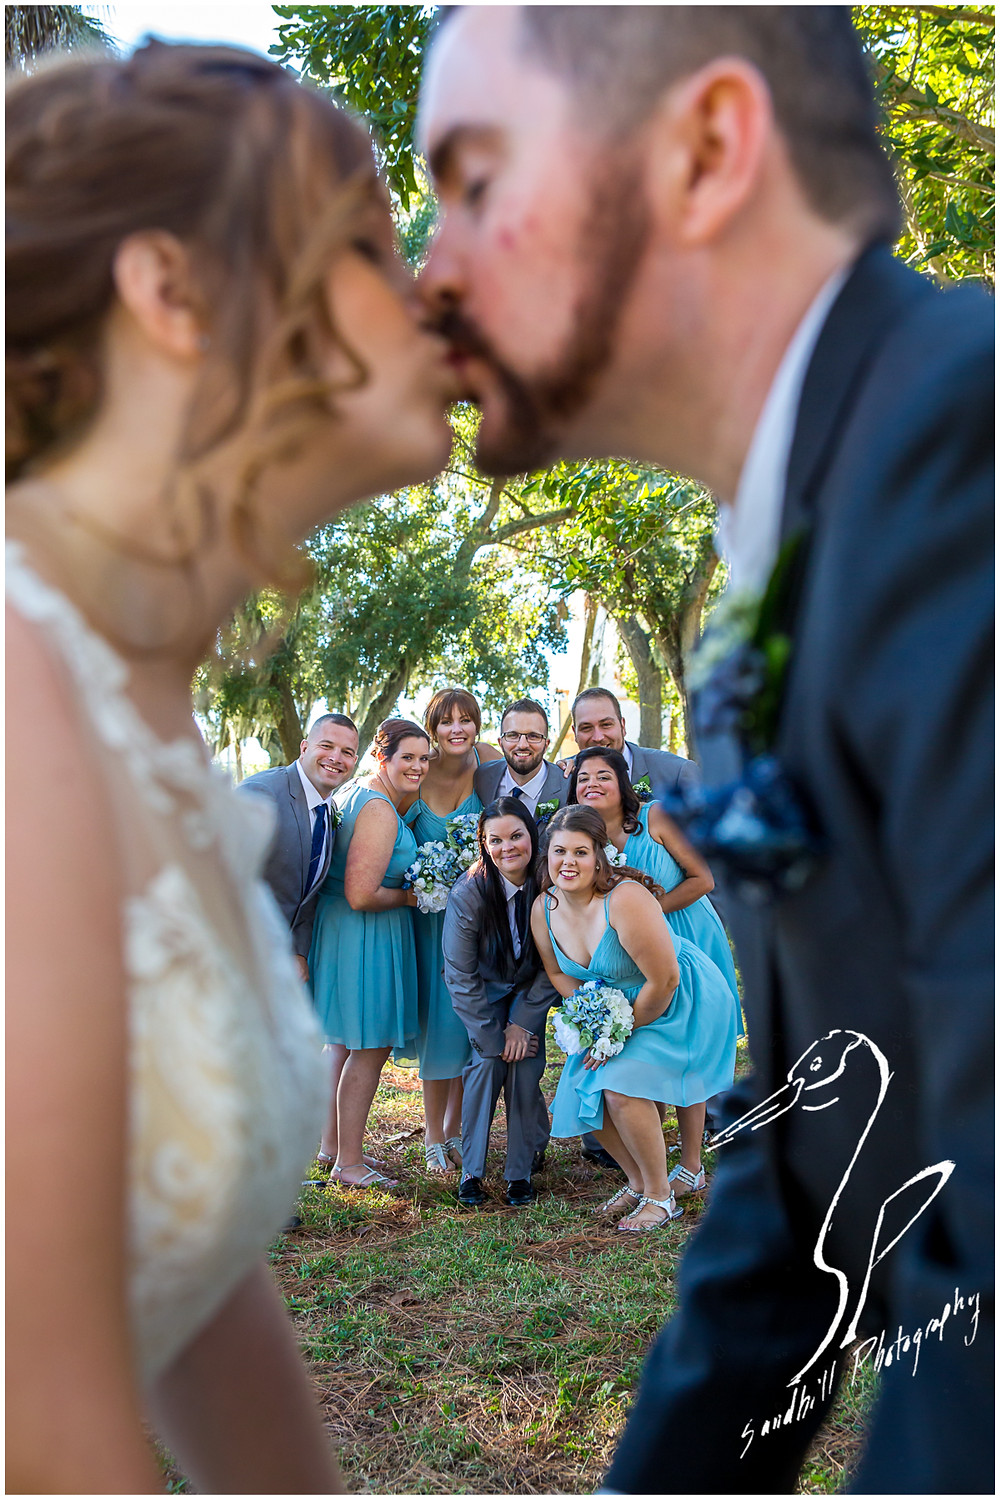 Sarasota the wedding party smiling behind a bride and groom as they kiss. unique wedding picture by Sandhill Photography